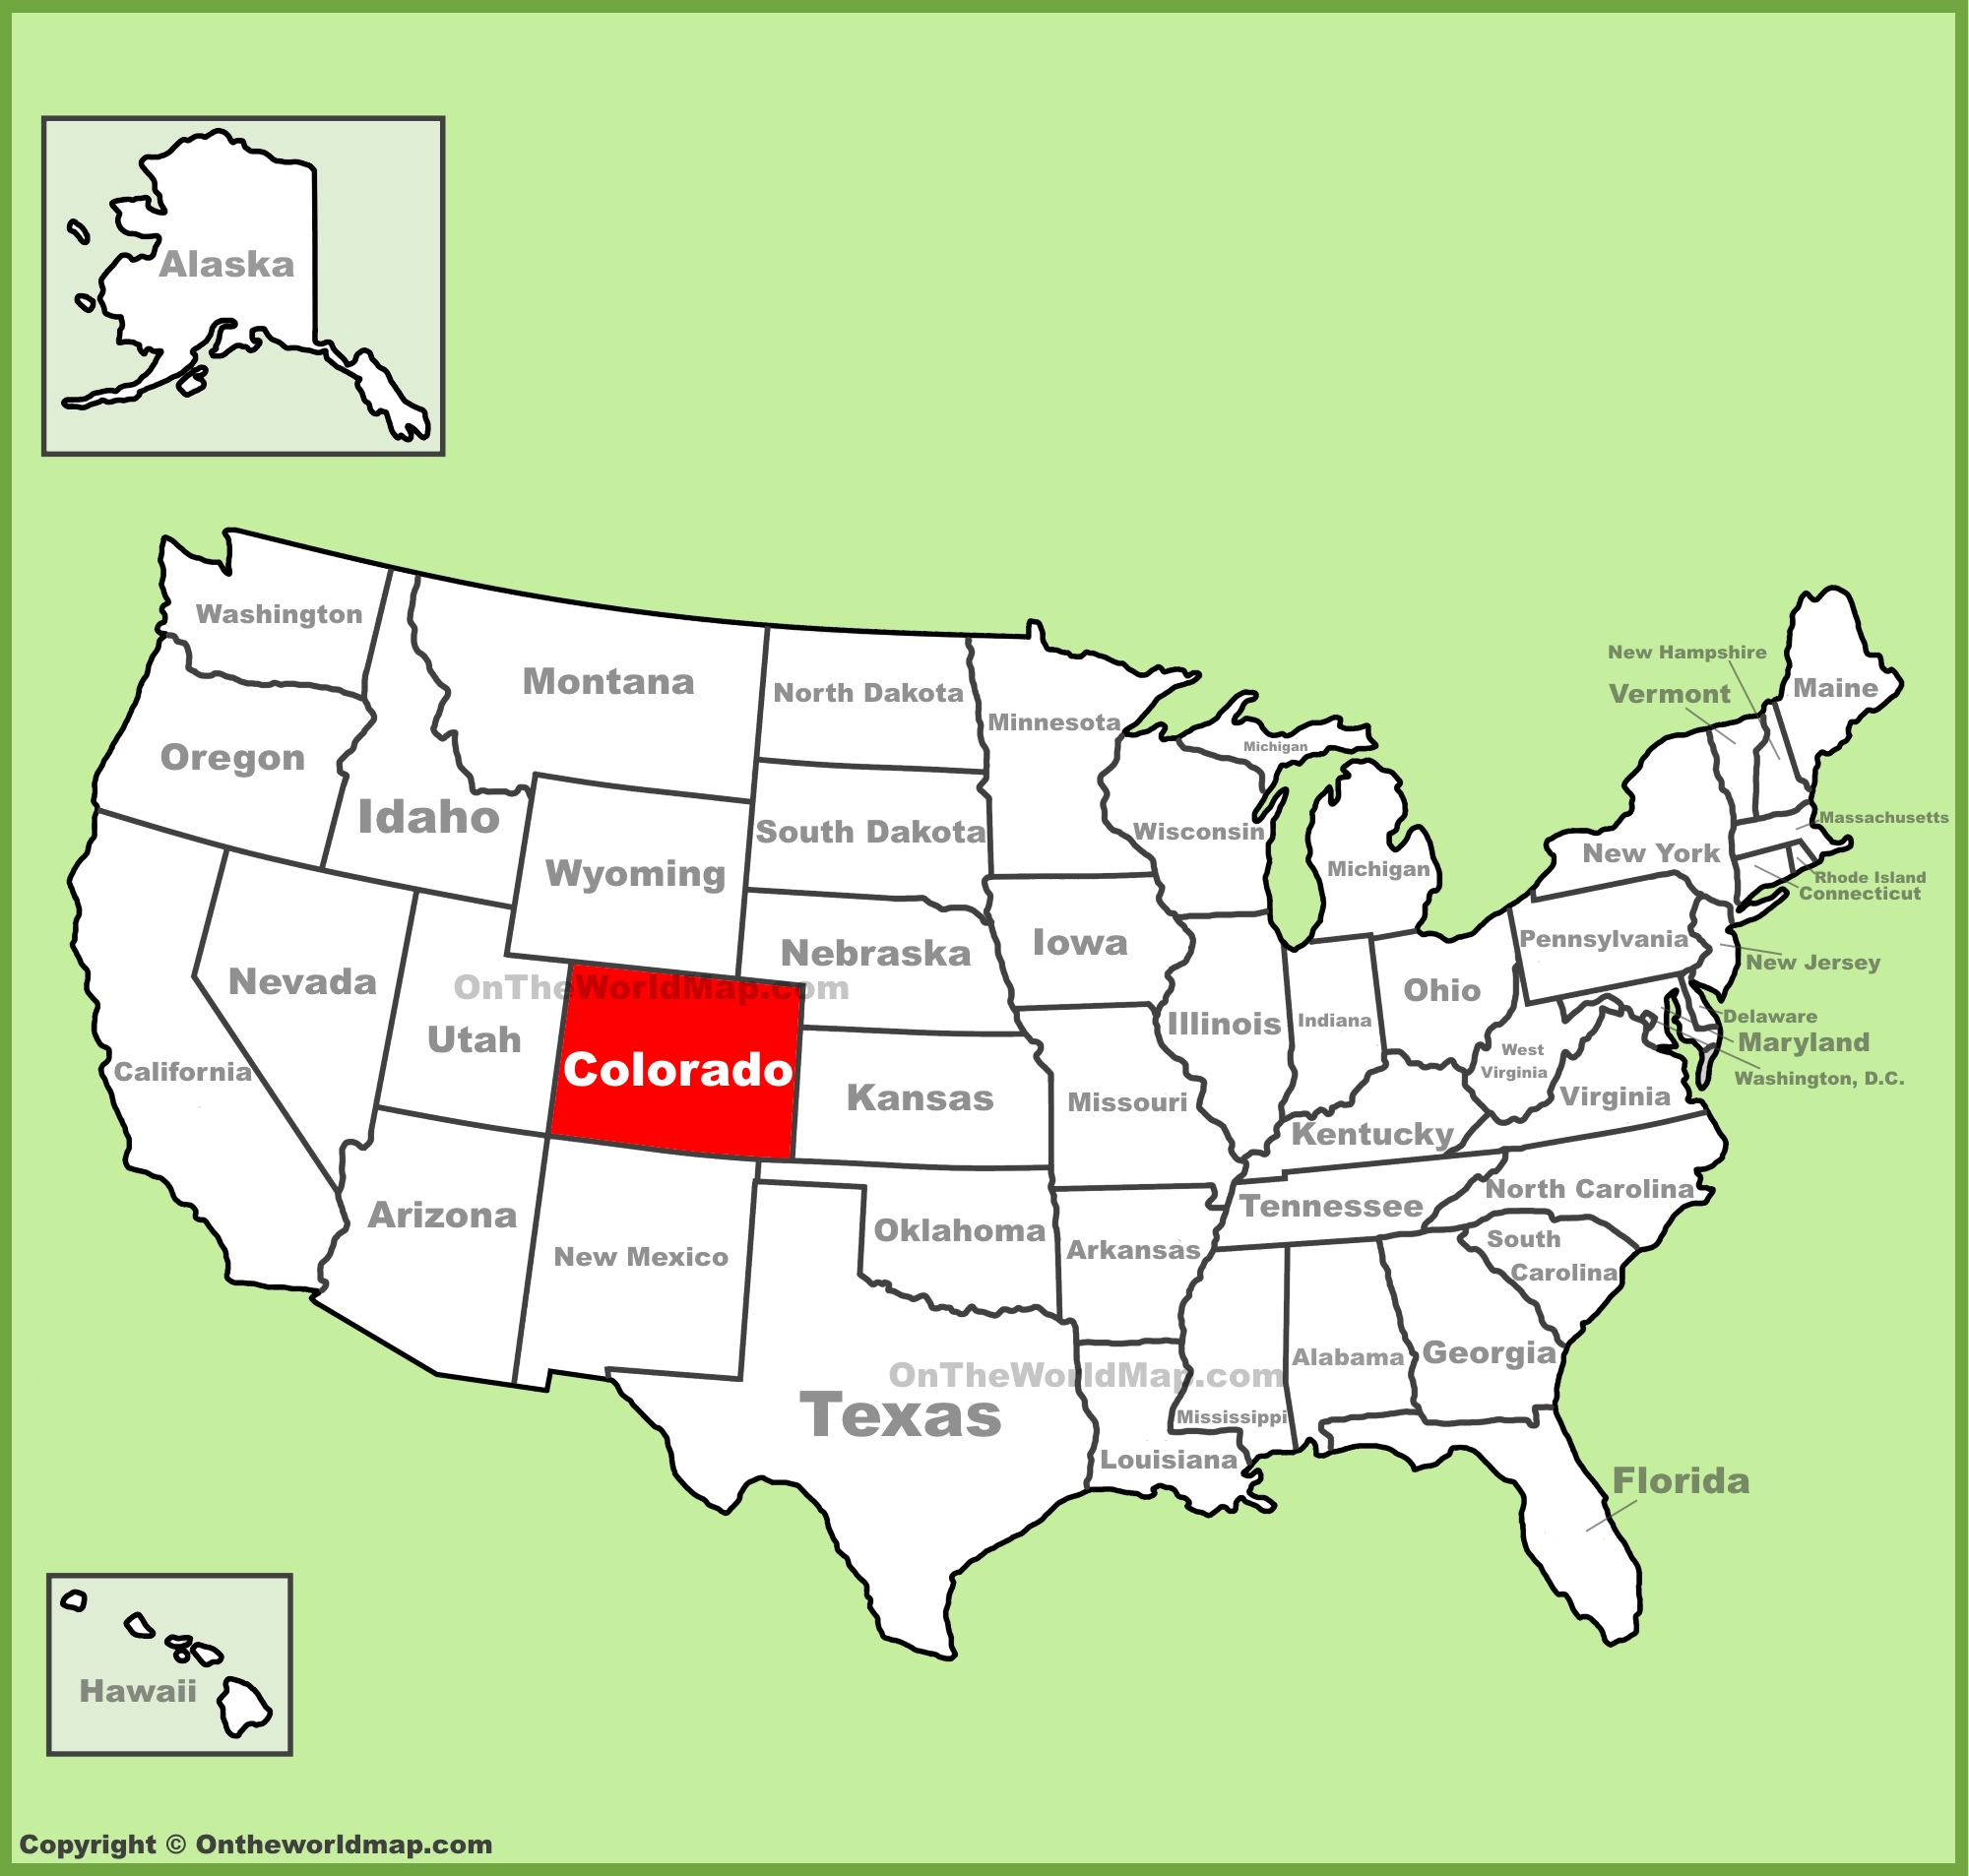 A Map Of Colorado Colorado State Maps | USA | Maps of Colorado (CO) A Map Of Colorado